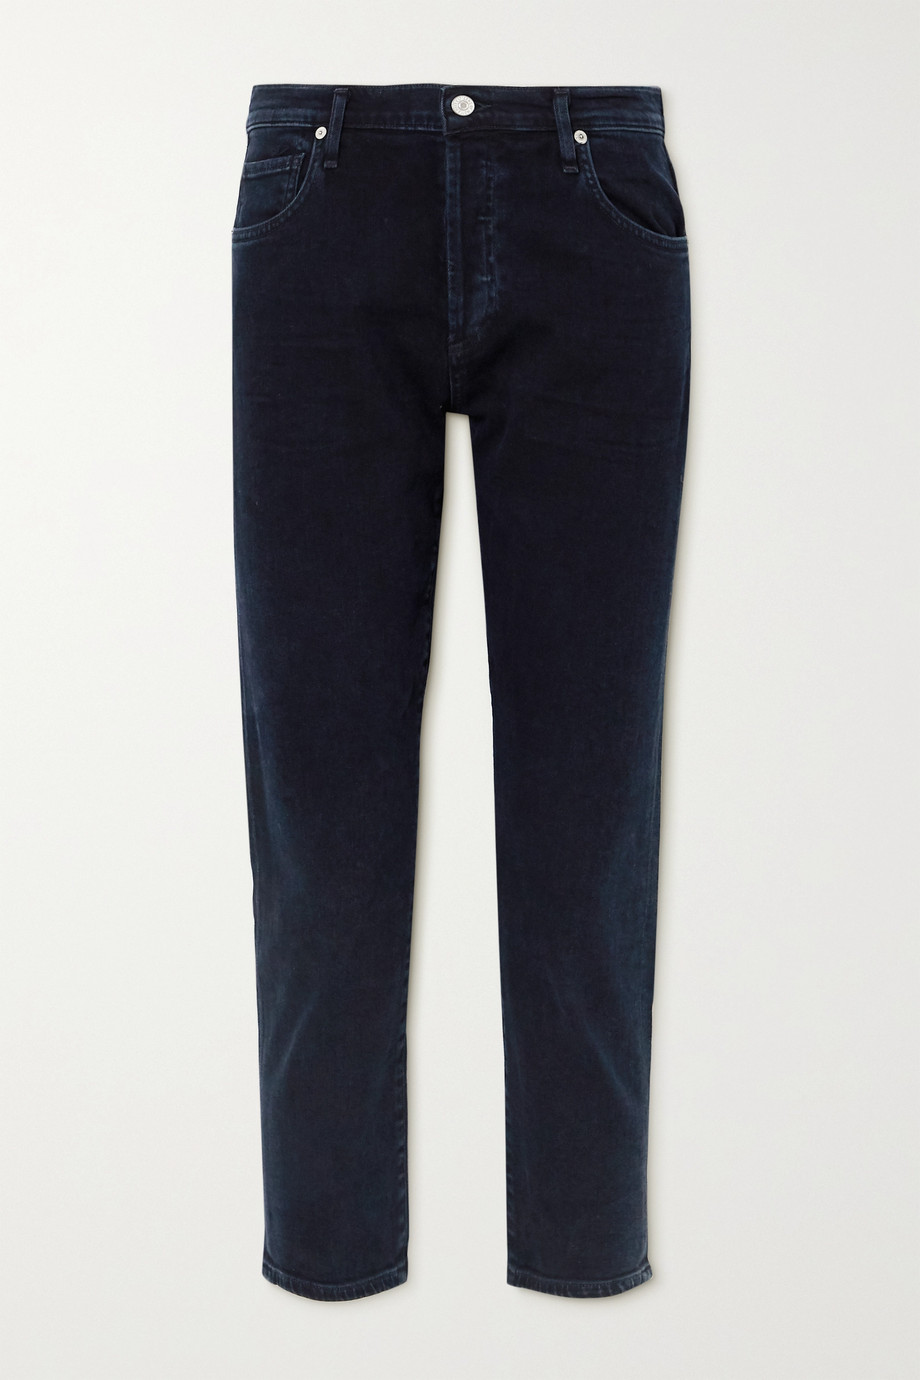 Citizens of Humanity Emerson high-rise straight-leg jeans